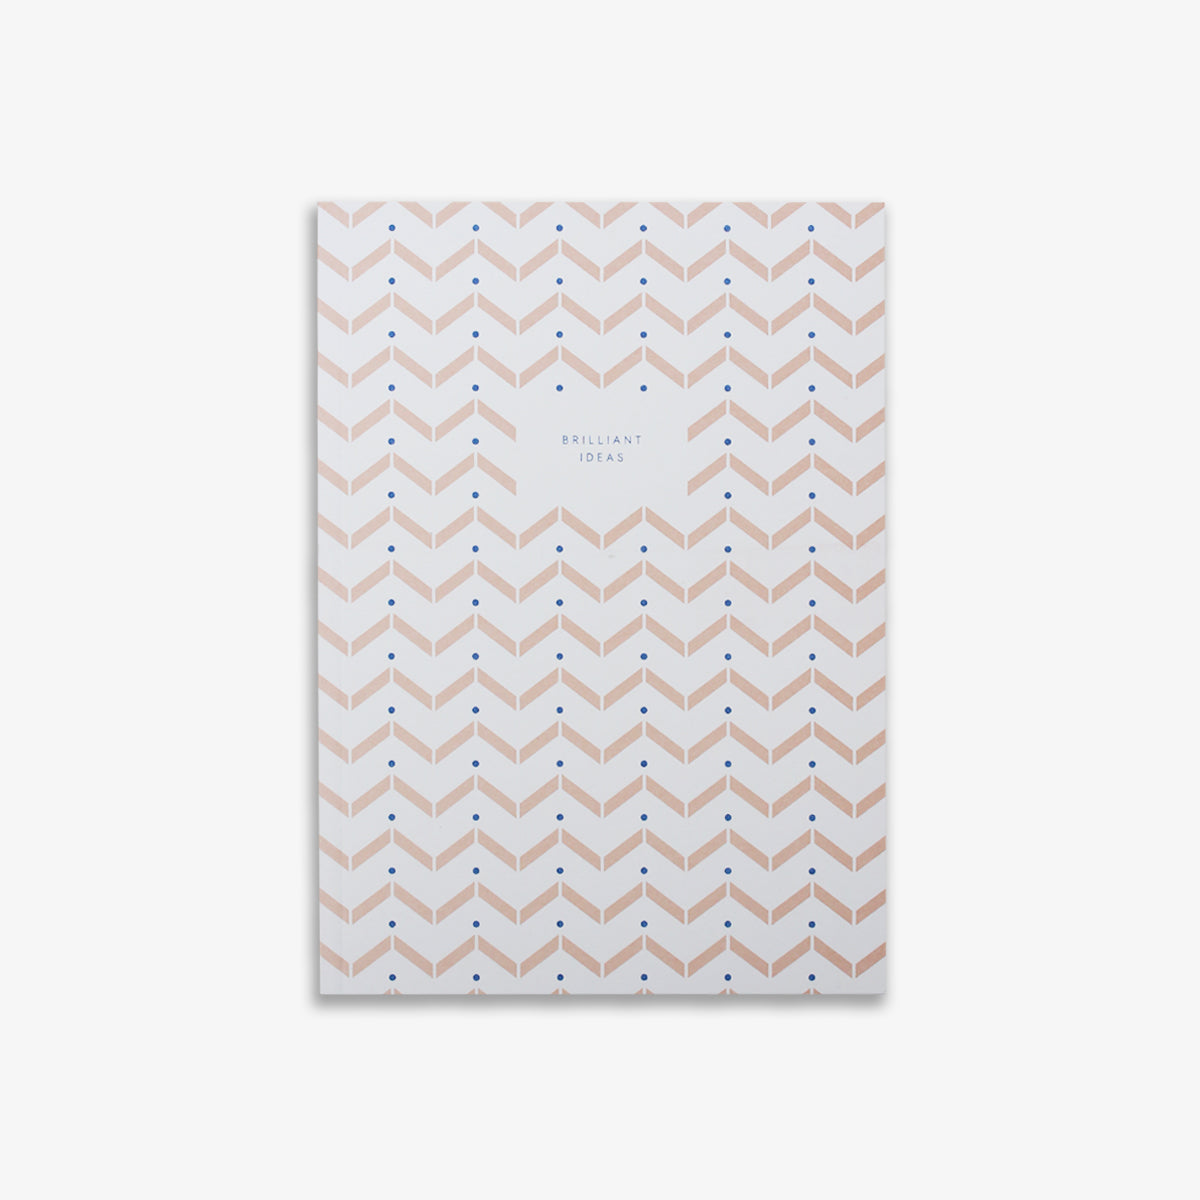 SMALL NOTEBOOK ZIGZAG // ROSE